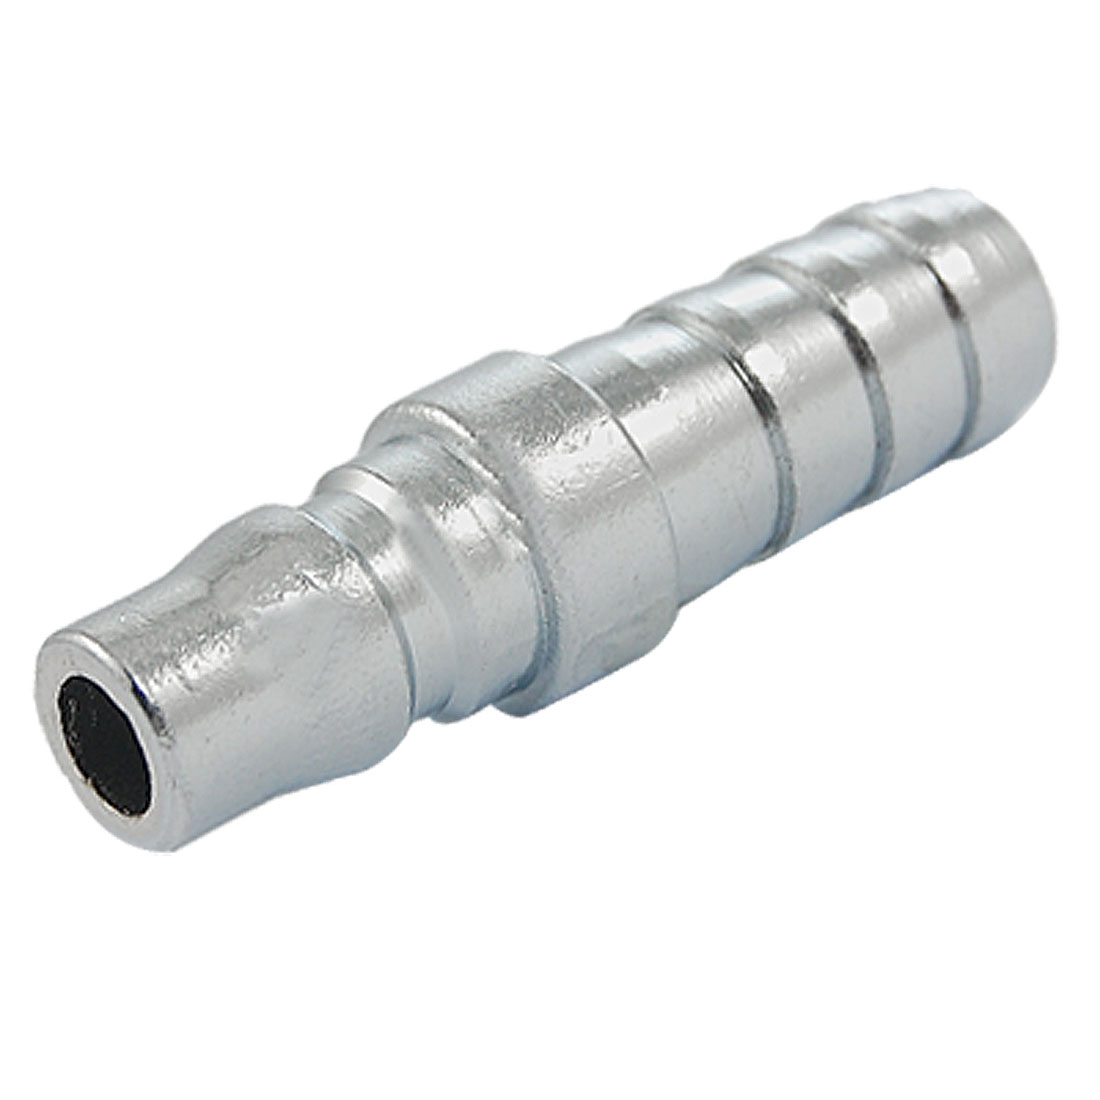 "Metal Pneumatic Pipe Fitting 15/32"" x 7/16"" Air Quick Connector PH40"